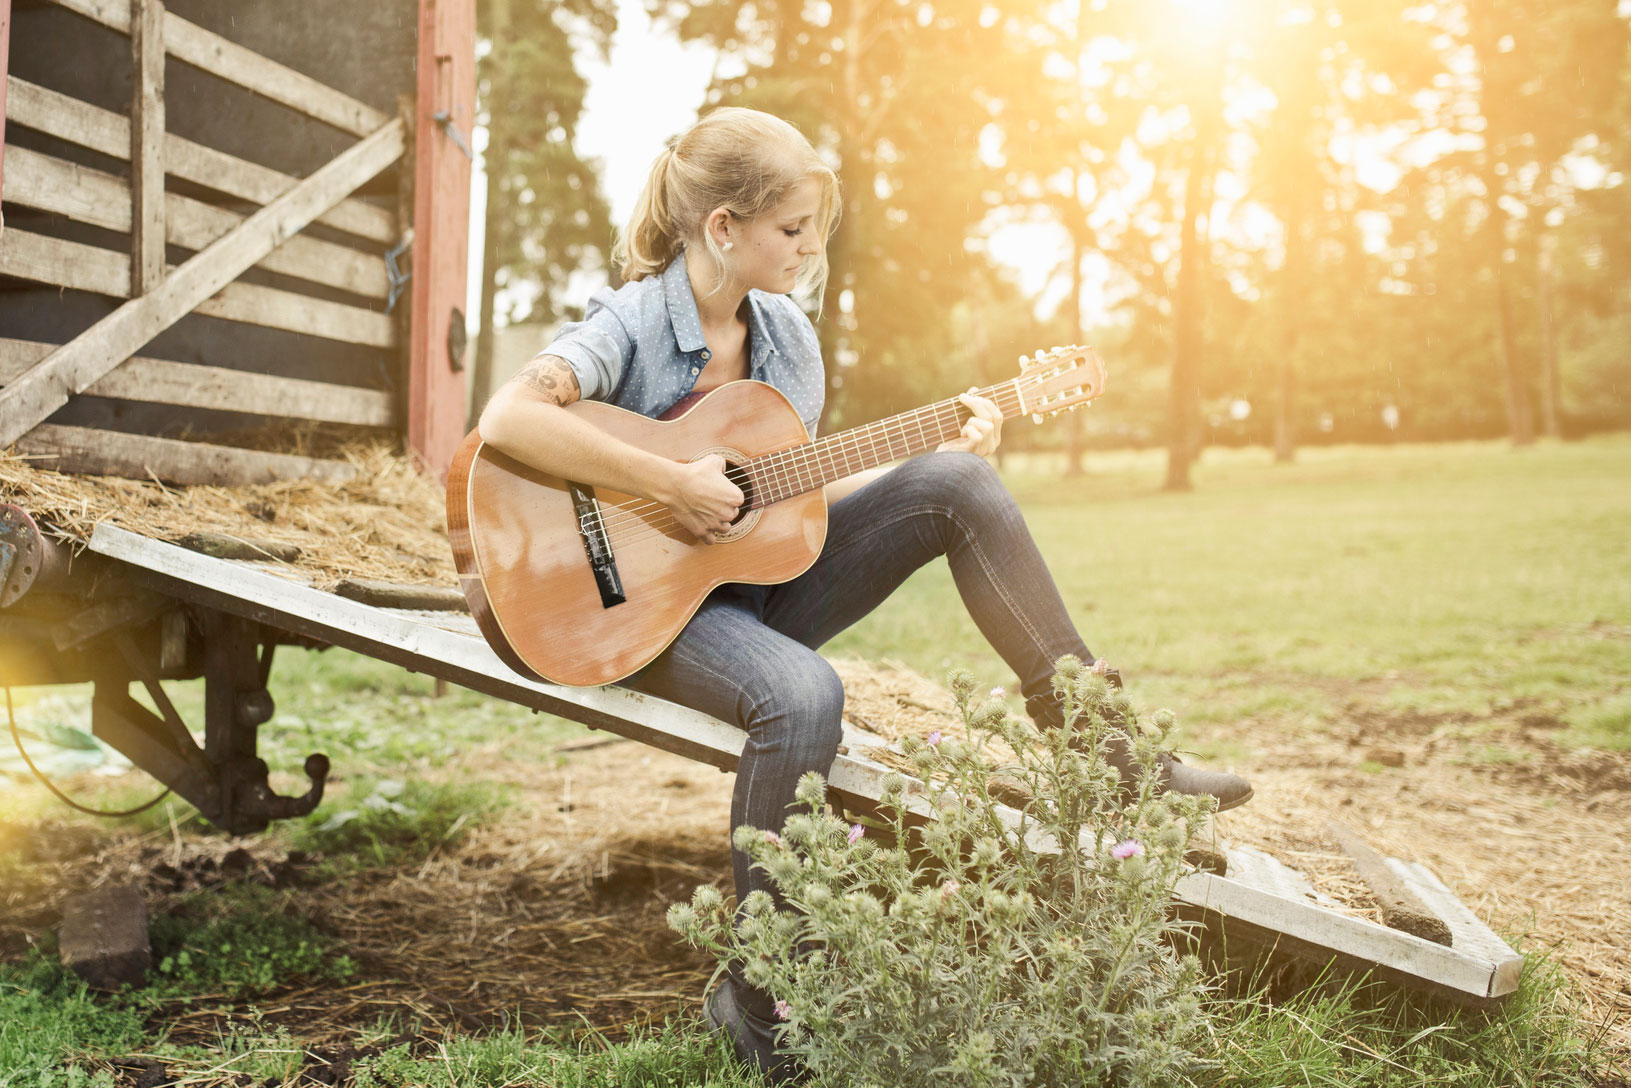 Guitar Chords For Country Songs Lovetoknow